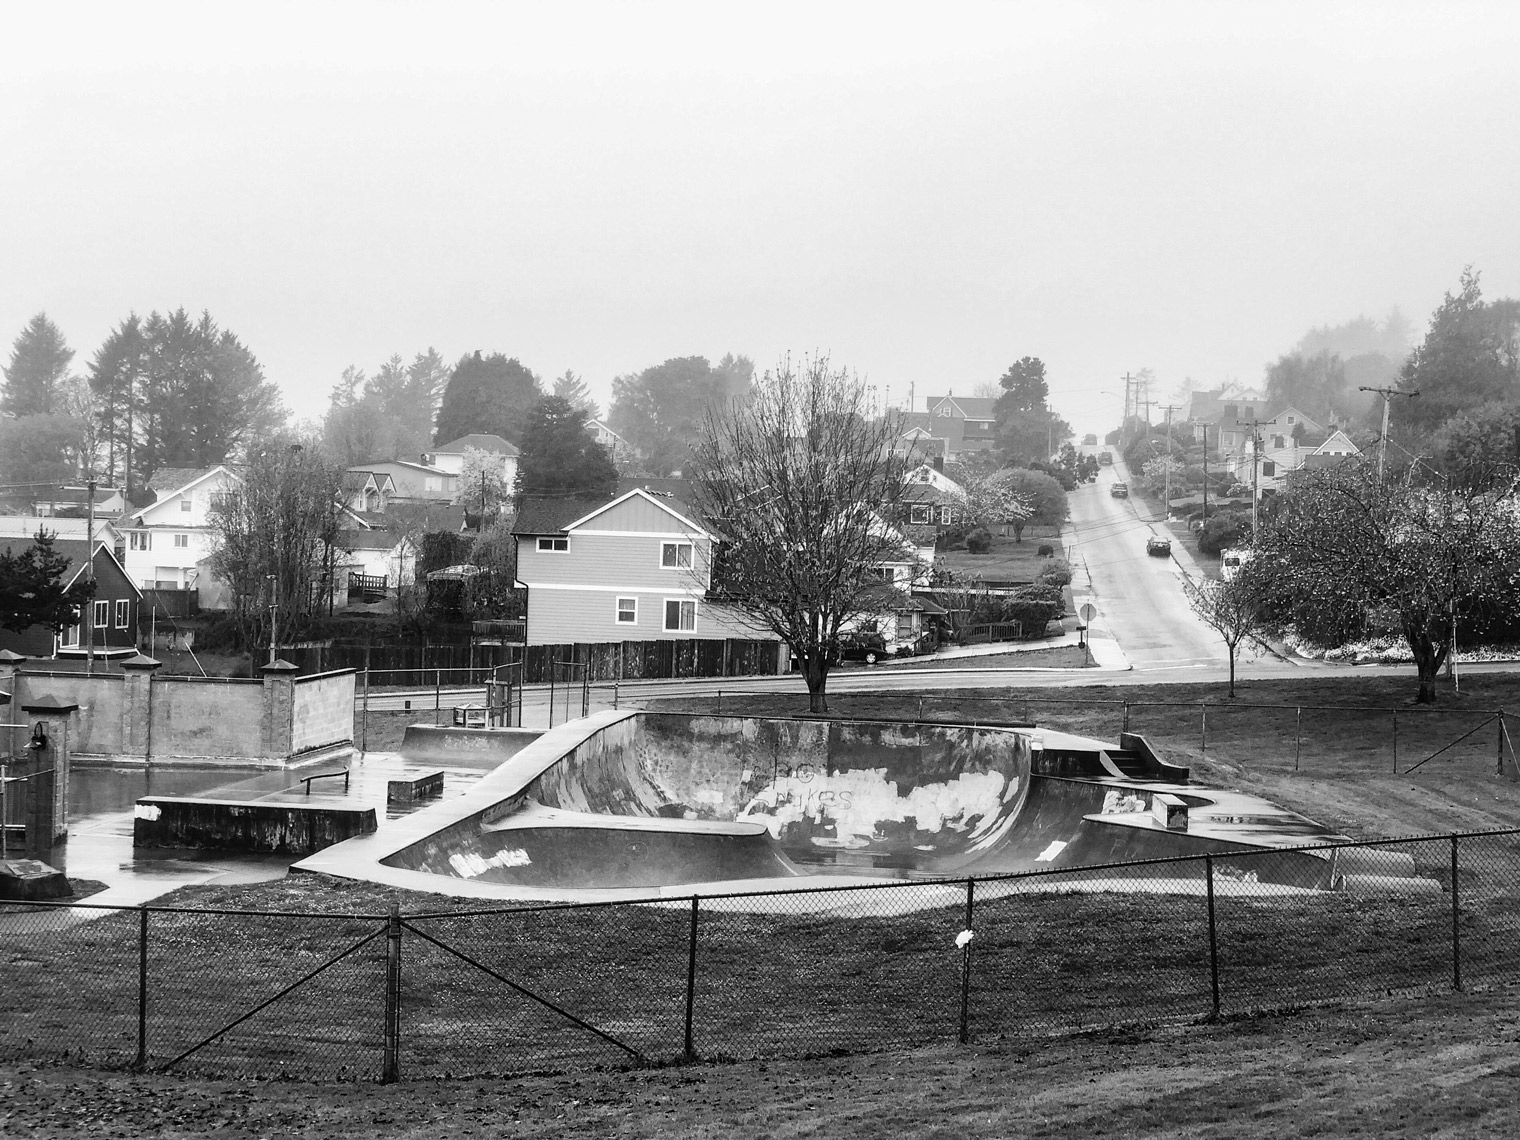 RoadTripping_SkateparkProject_Park13_Town_Retouched_Web